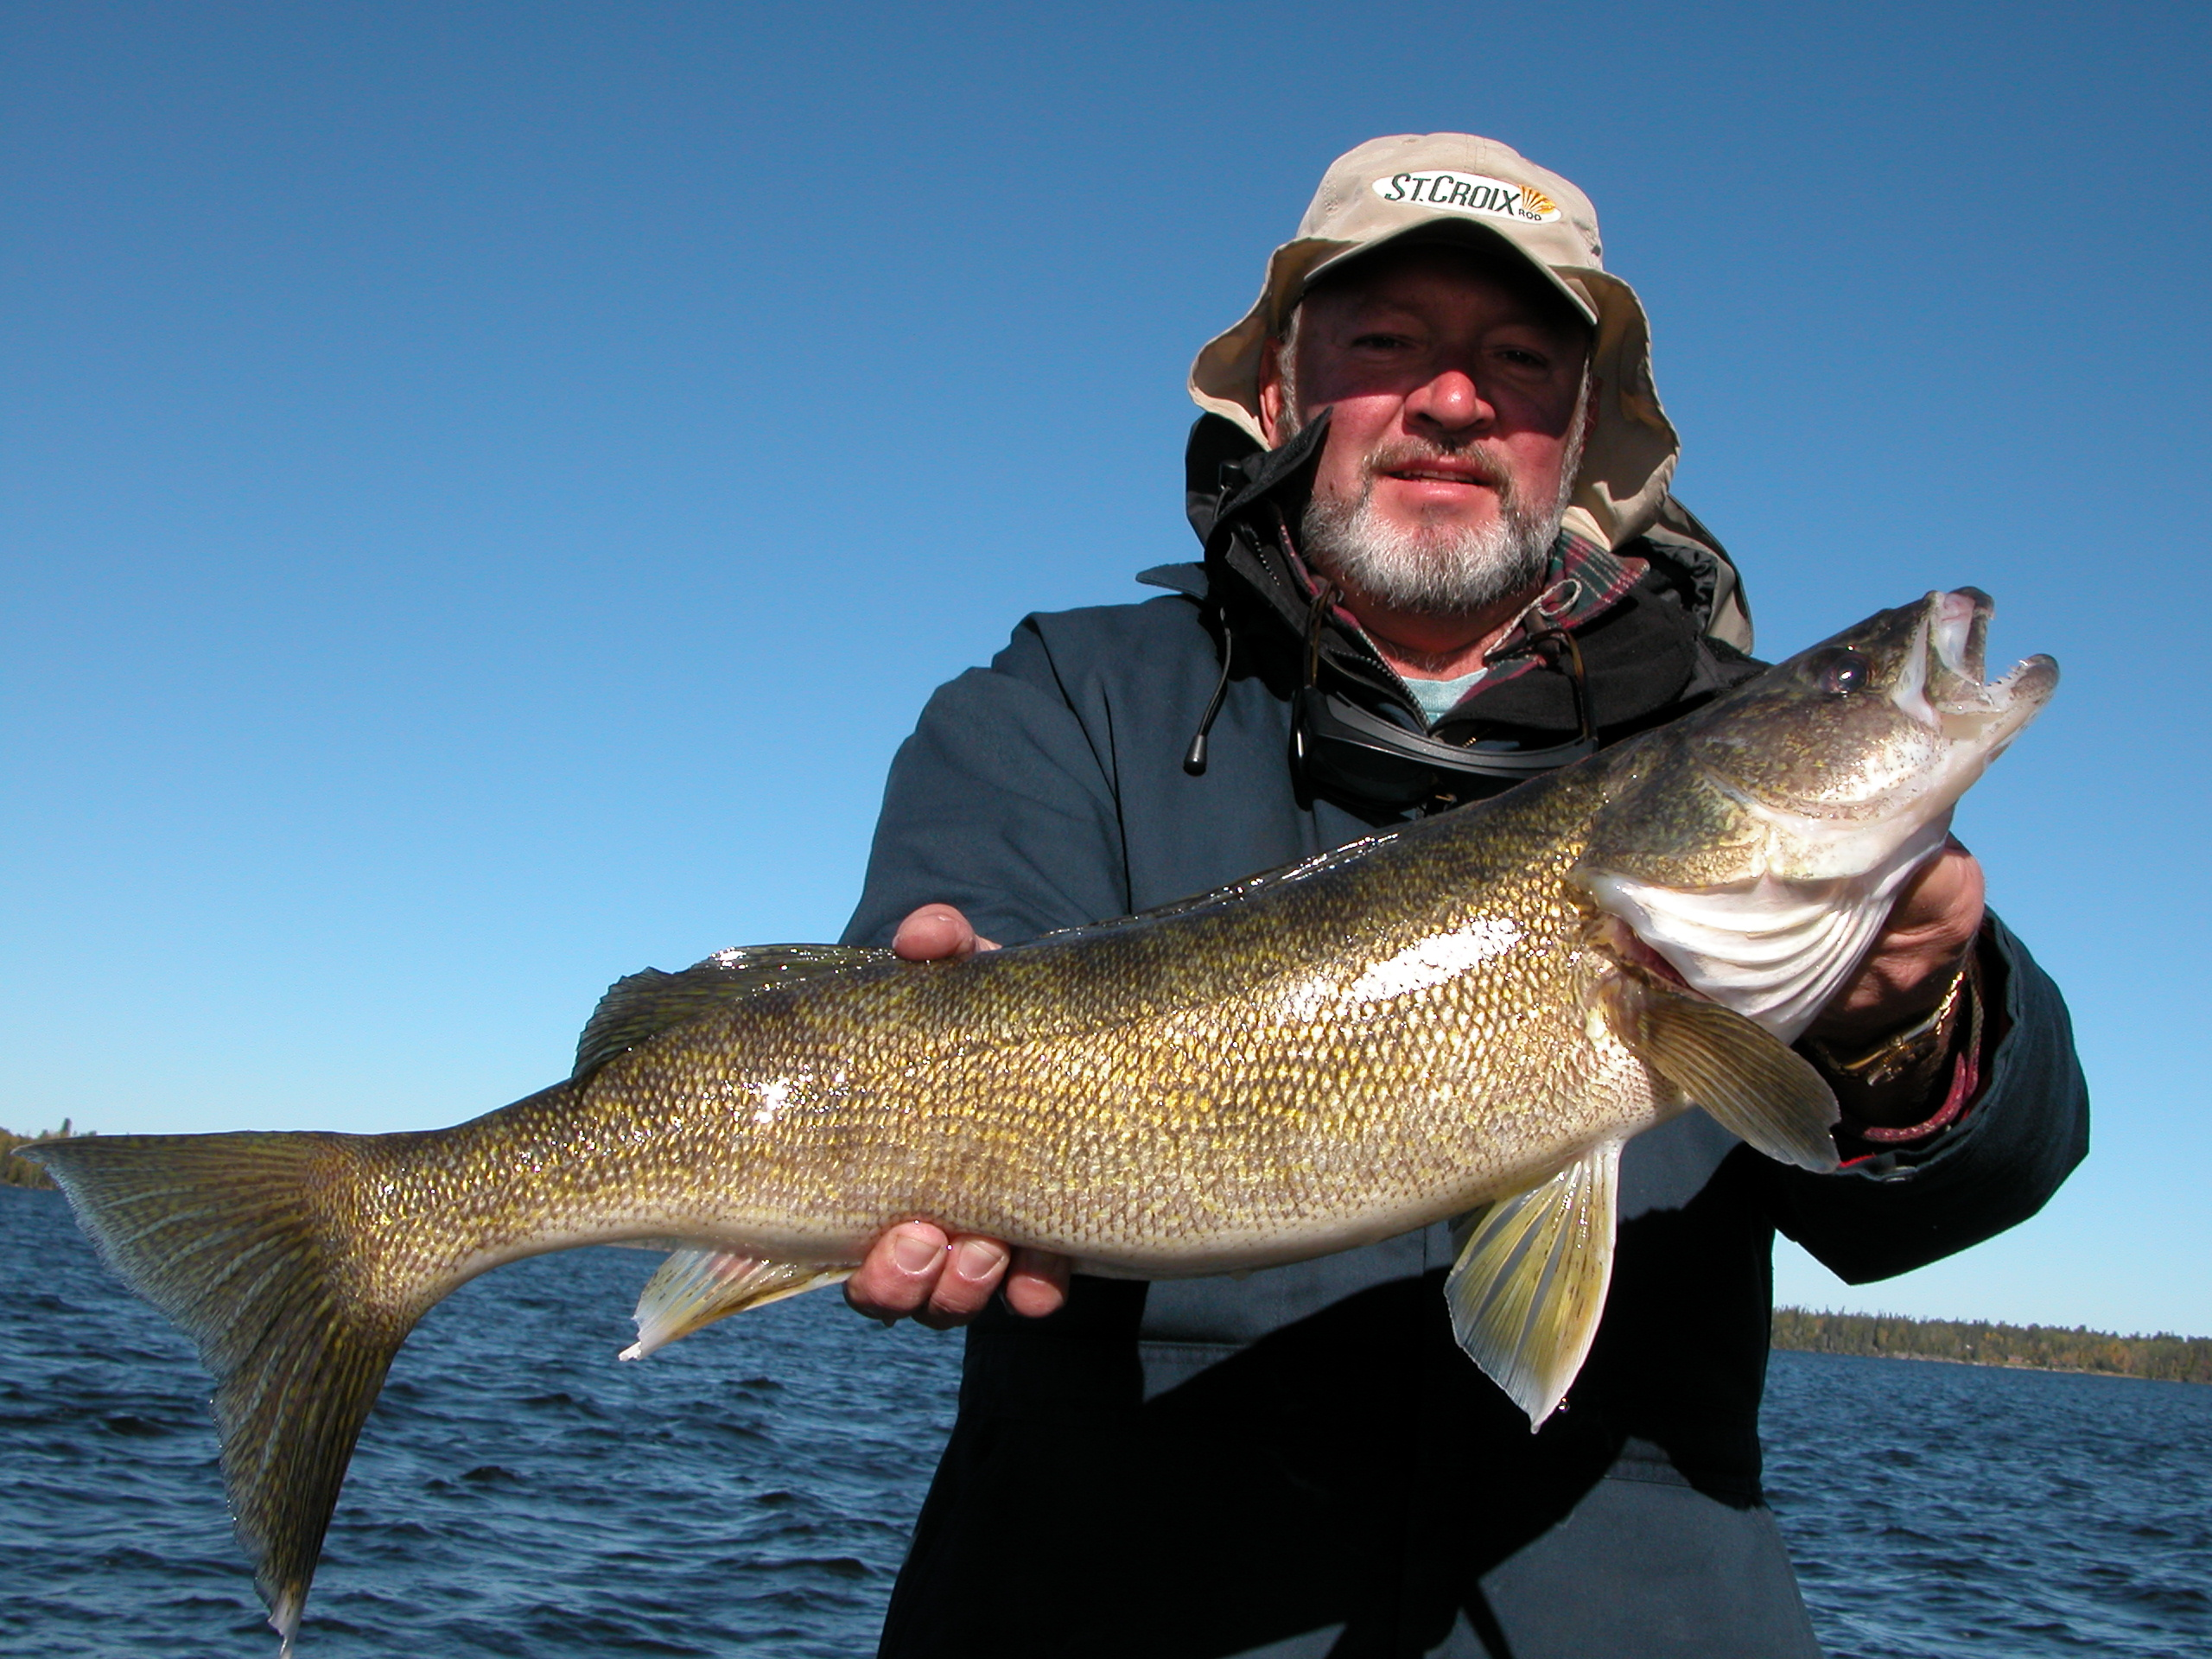 Nice walleye Lac Seul Lake caught at northwinds canadian outfitters